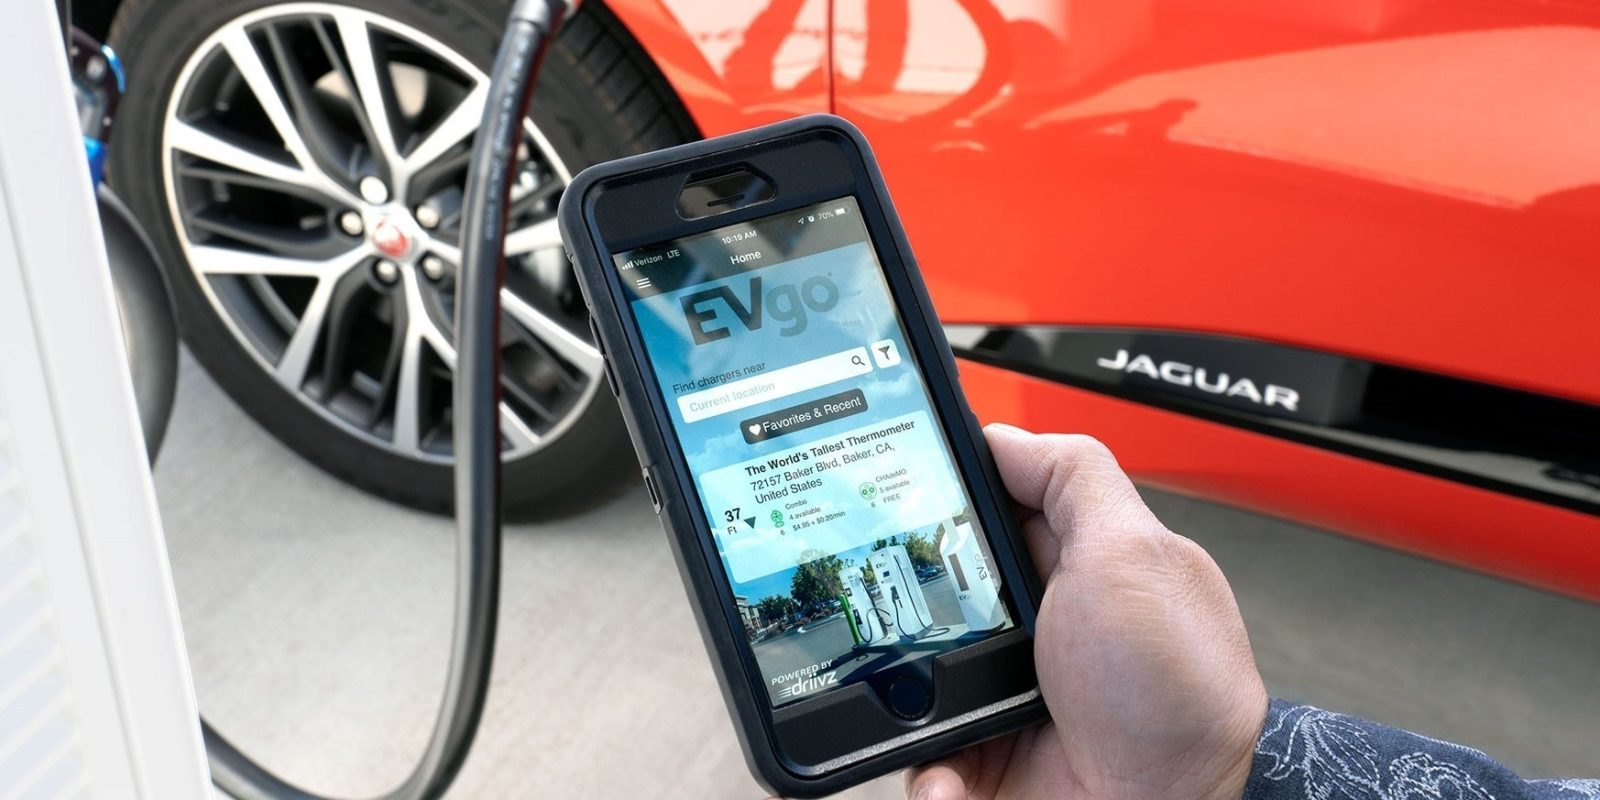 EVgo announces roaming agreements with ChargePoint, EV Connect for easier charging access